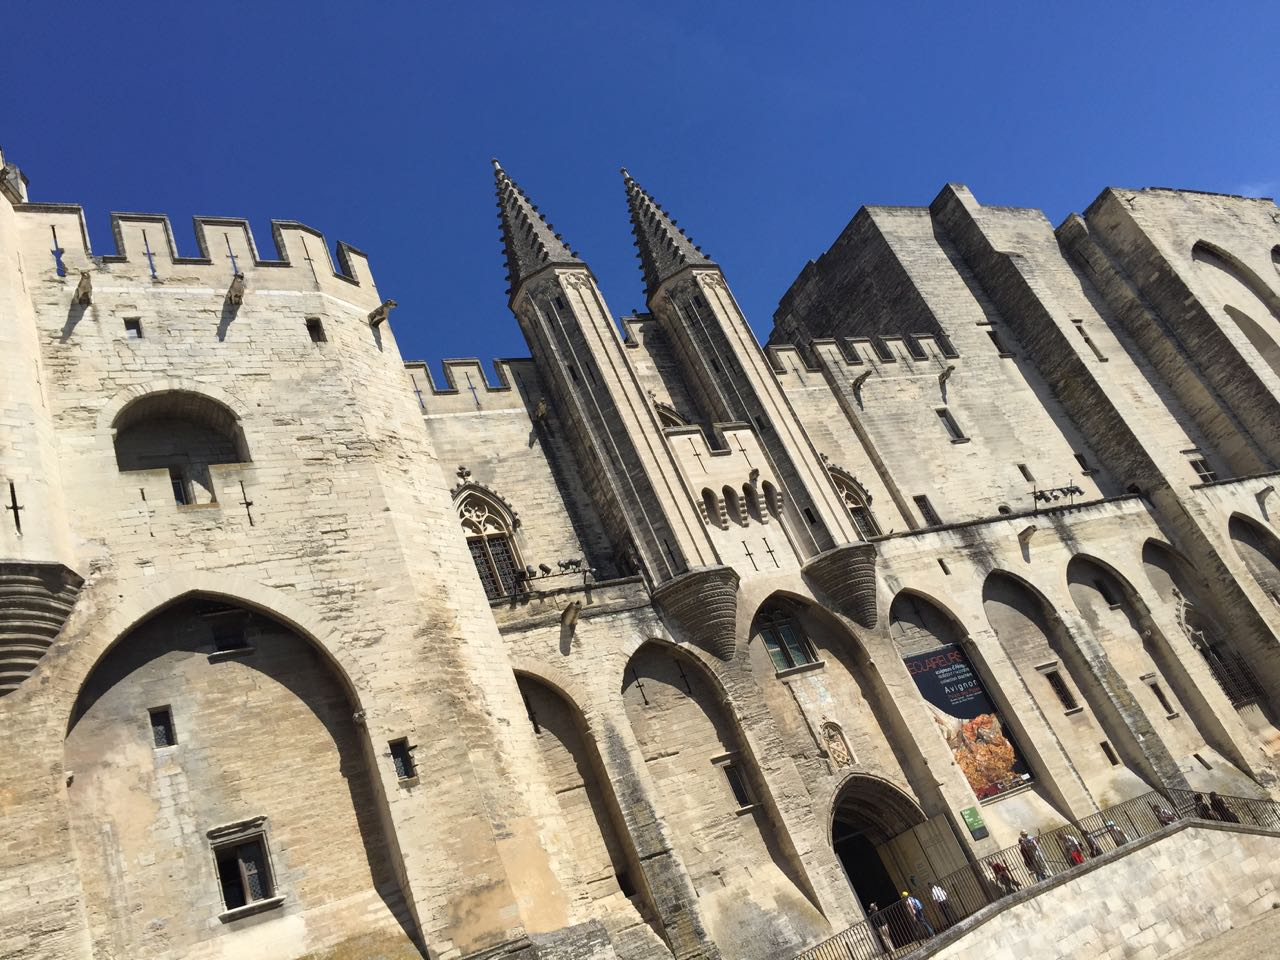 Avignon, the Popes Palace and the festivalA